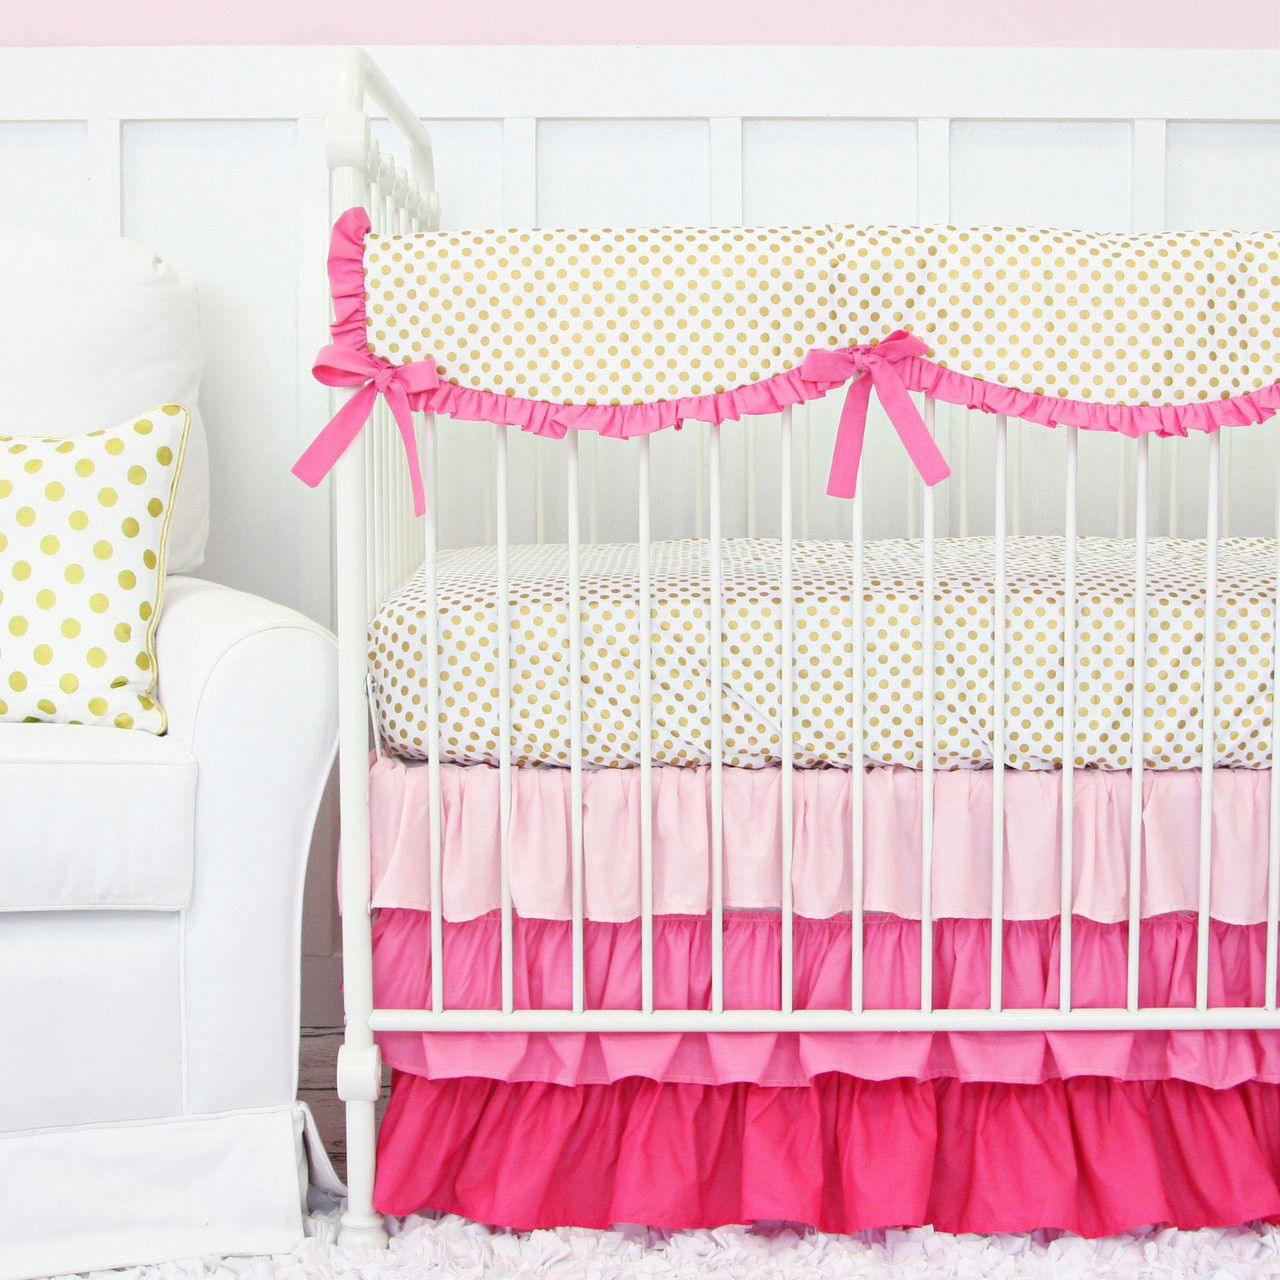 Our new Pink and Gold Dot Ruffle Designer Baby Bedding is perfect for a gold inspired nursery! The metallic gold dot is just so perfect for any baby nursery!